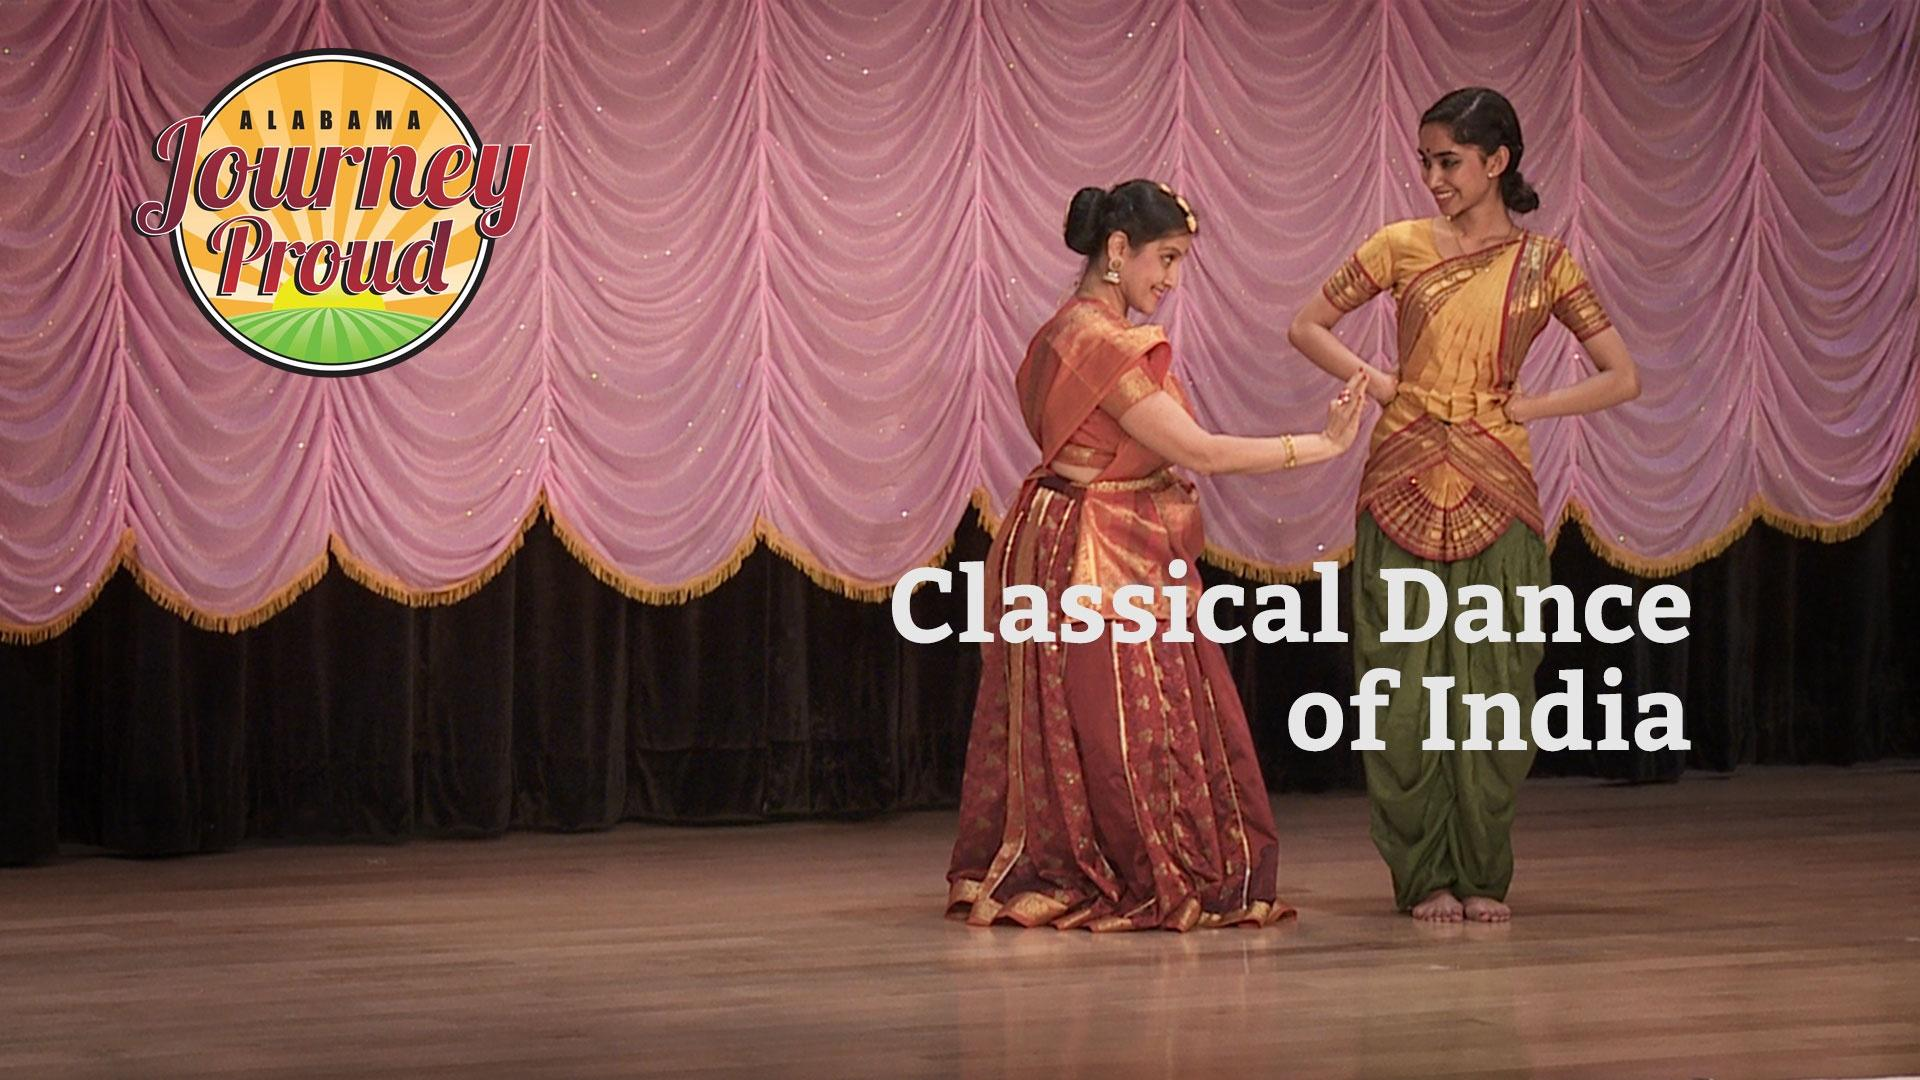 Journey Proud Classical Dance Of India Season 2 Episode 208 Pbs